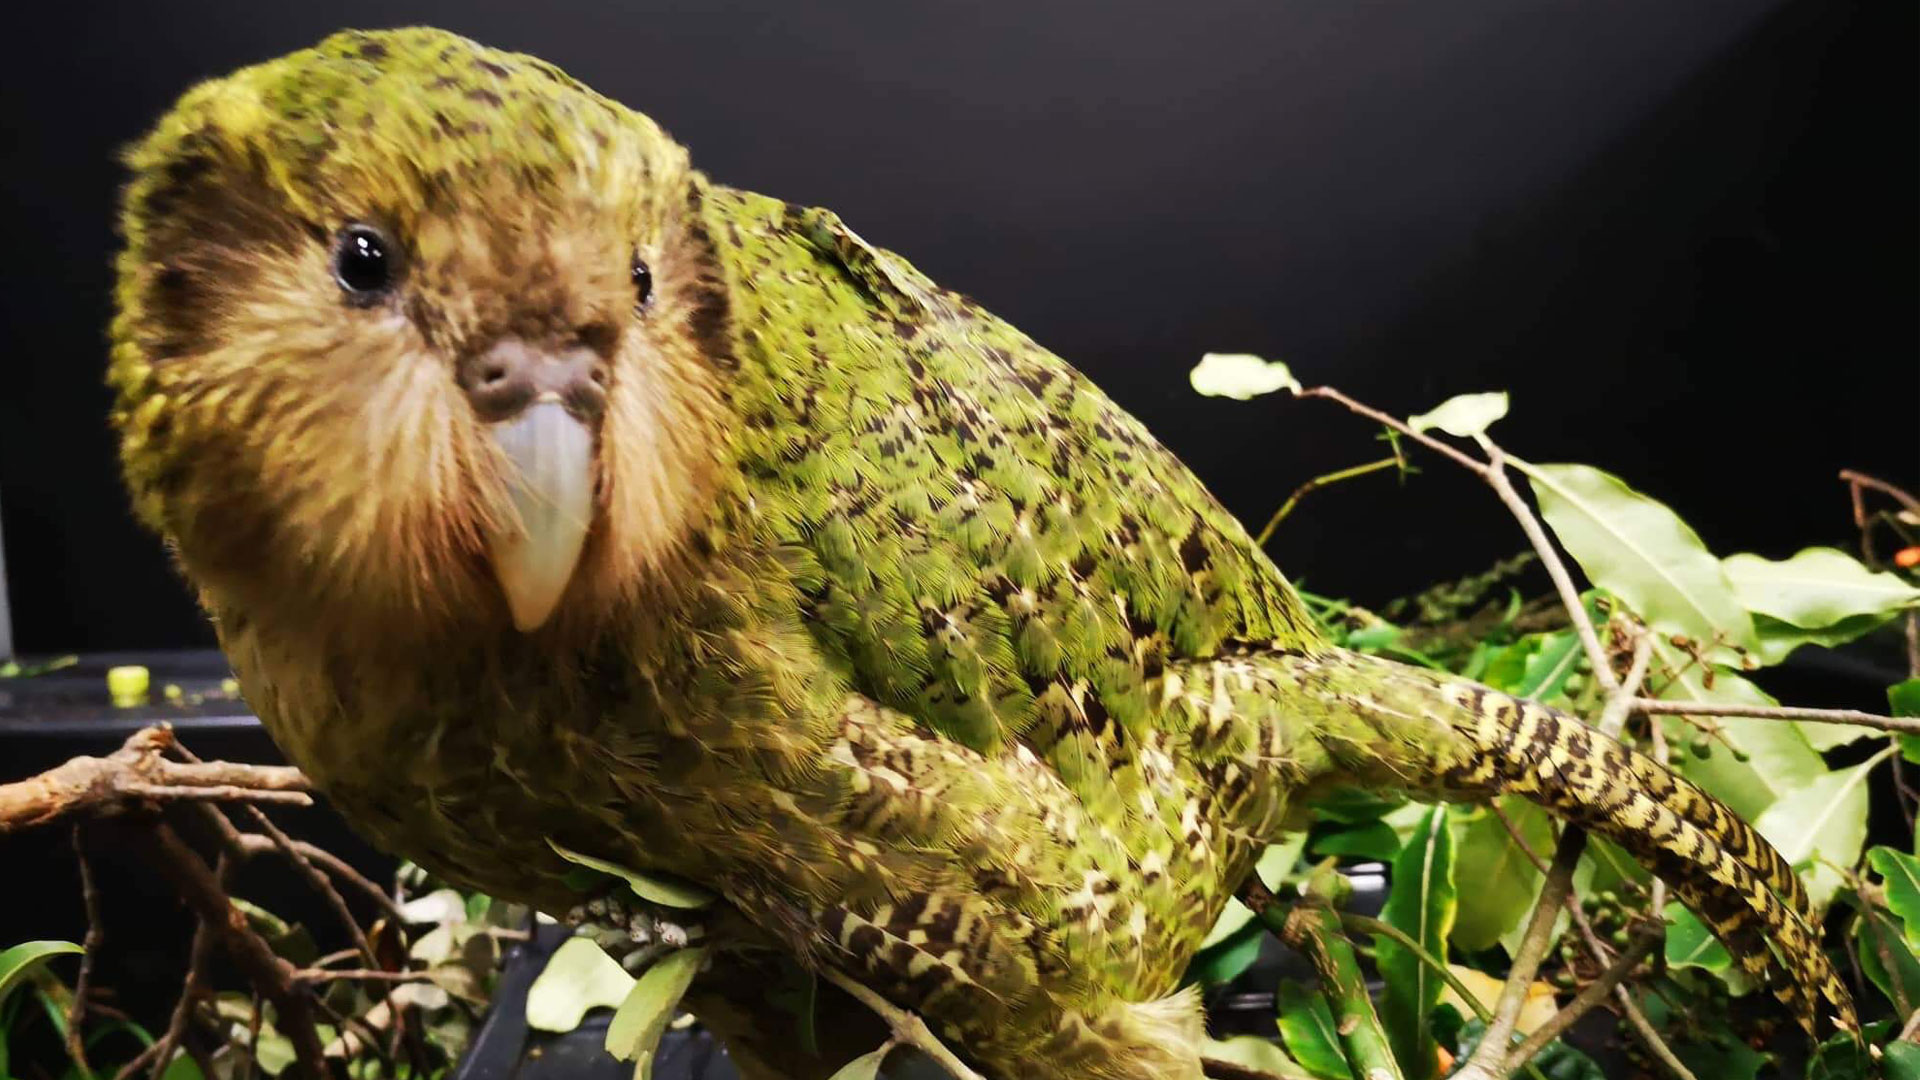 https://rfacdn.nz/zoo/assets/media/kakapo-alice-3-a-gallery-1.jpg